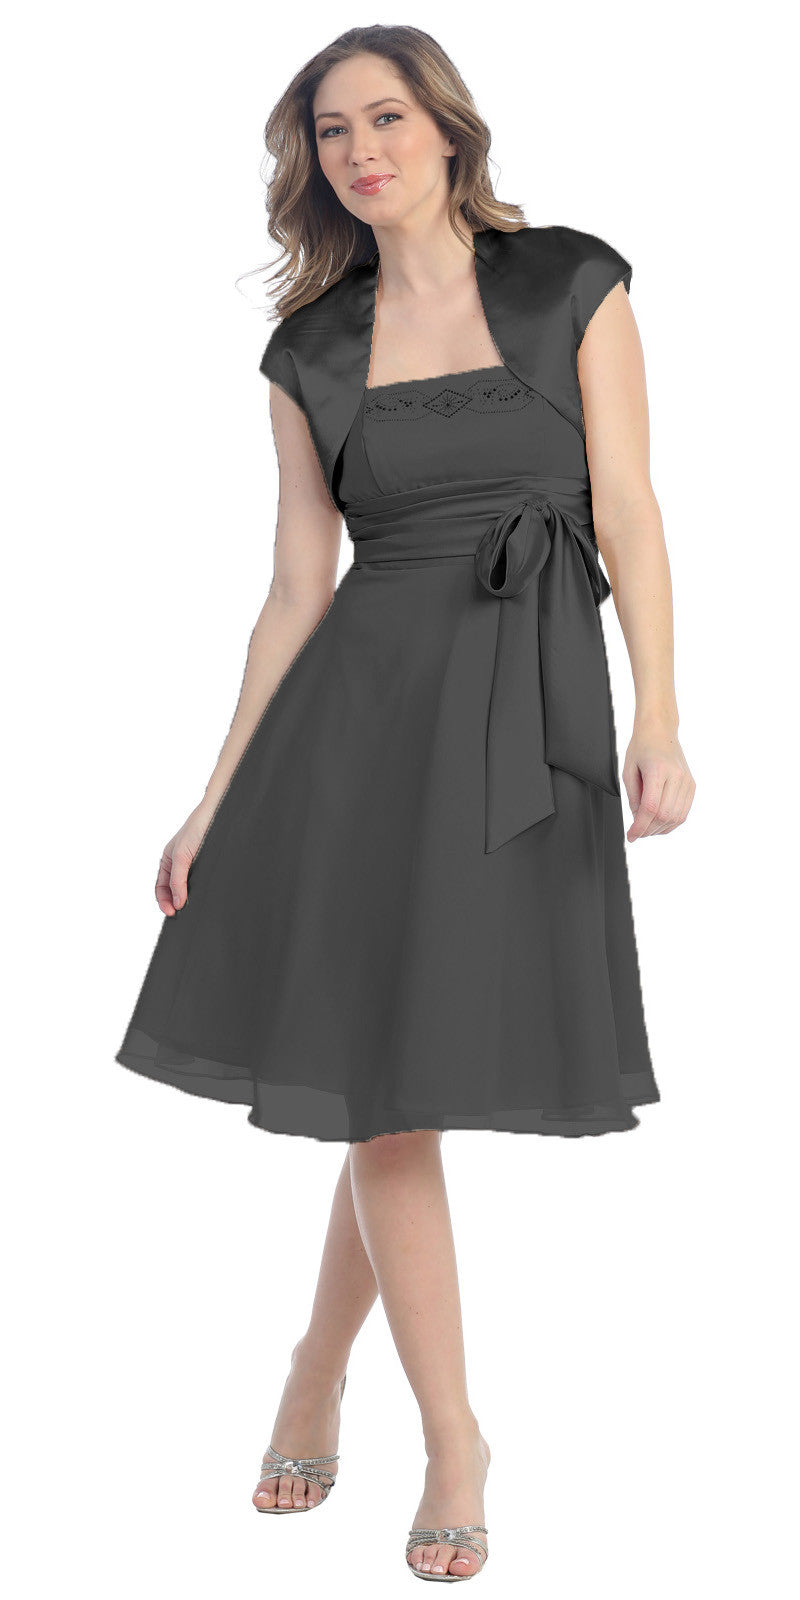 Short A Line Black Chiffon Dress Includes Bolero Jacket Knee Length